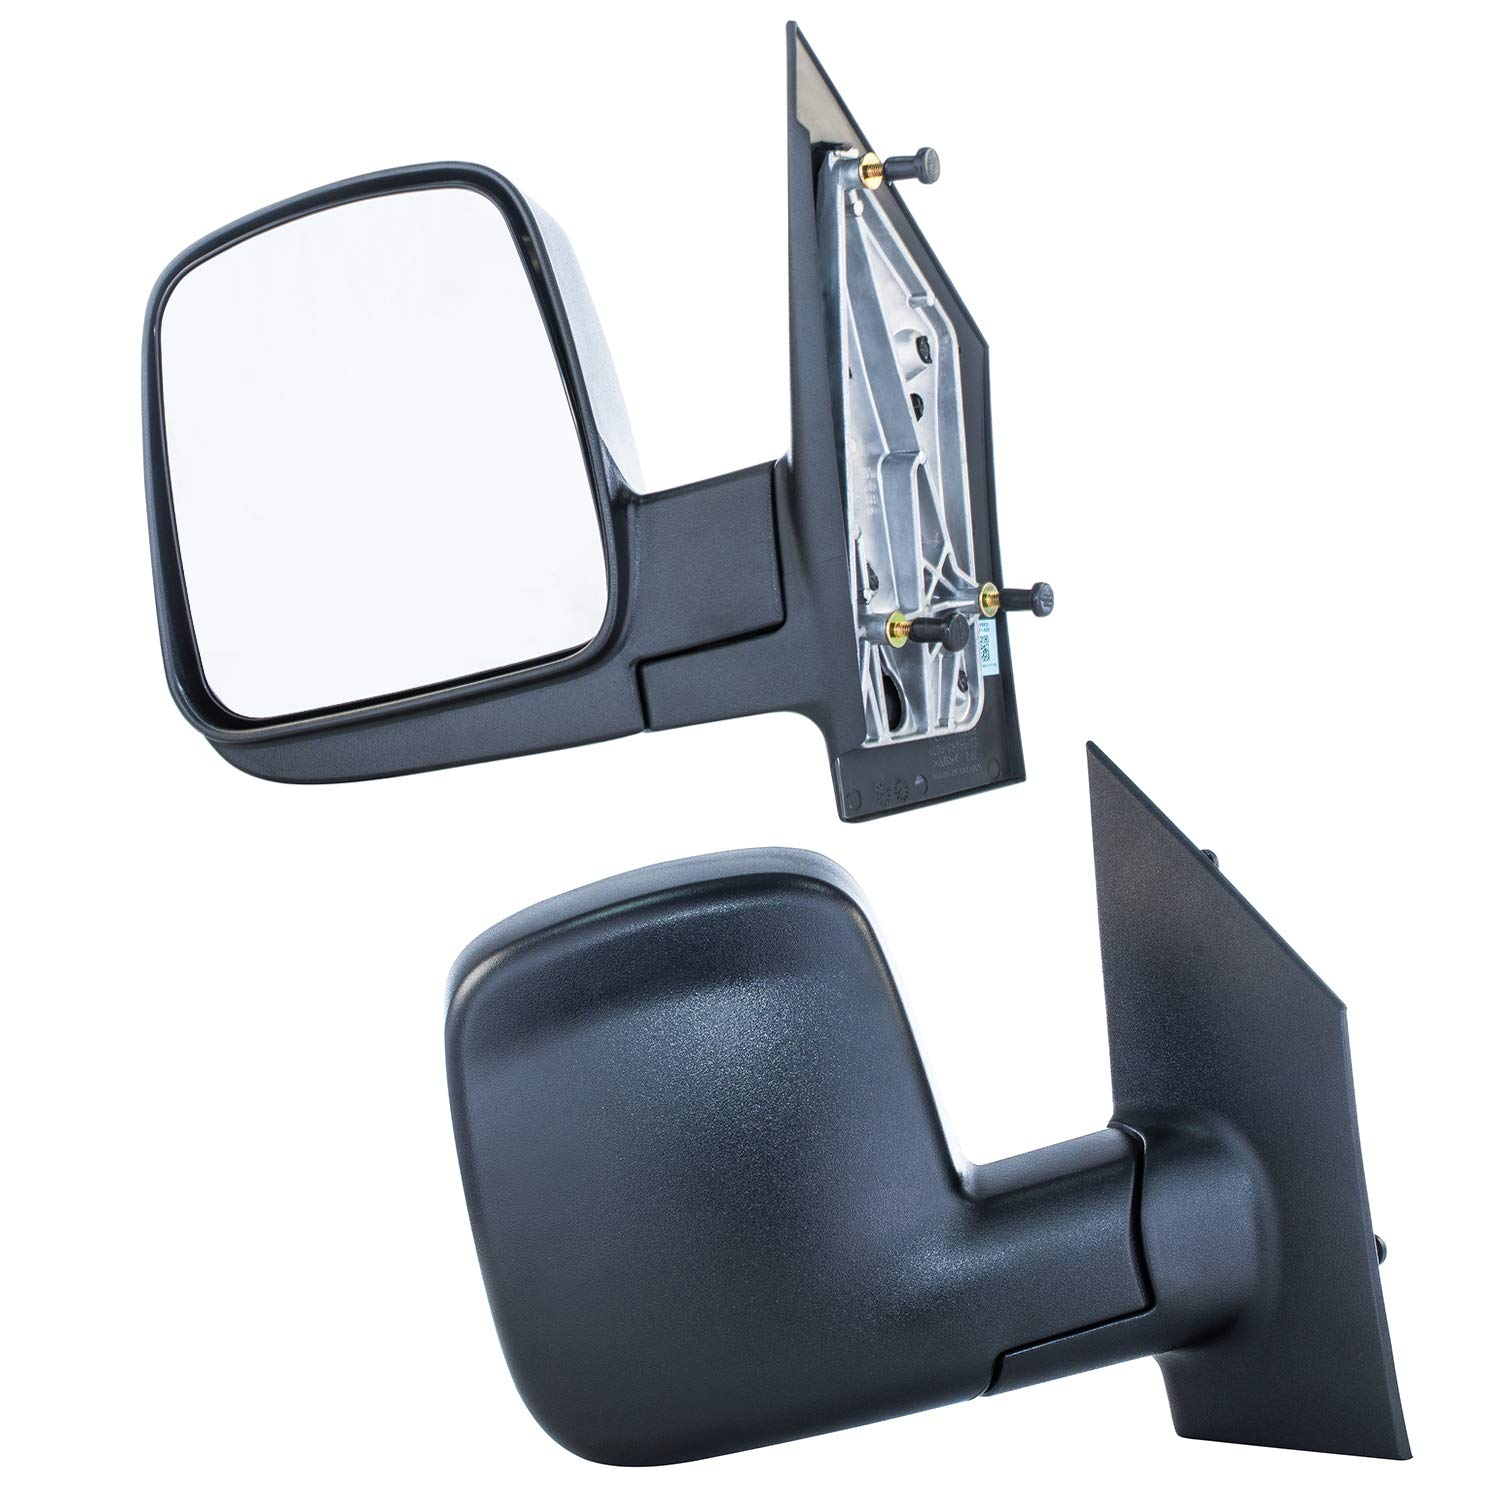 Driver and Passenger Side Door Mirrors for Chevy Express GMC Savana Textured Non-Heated Manual Folding (2003 2004 2005 2006 2007 2008 2009 2010 2011 2012 2013 2014 2015 2016 2017)